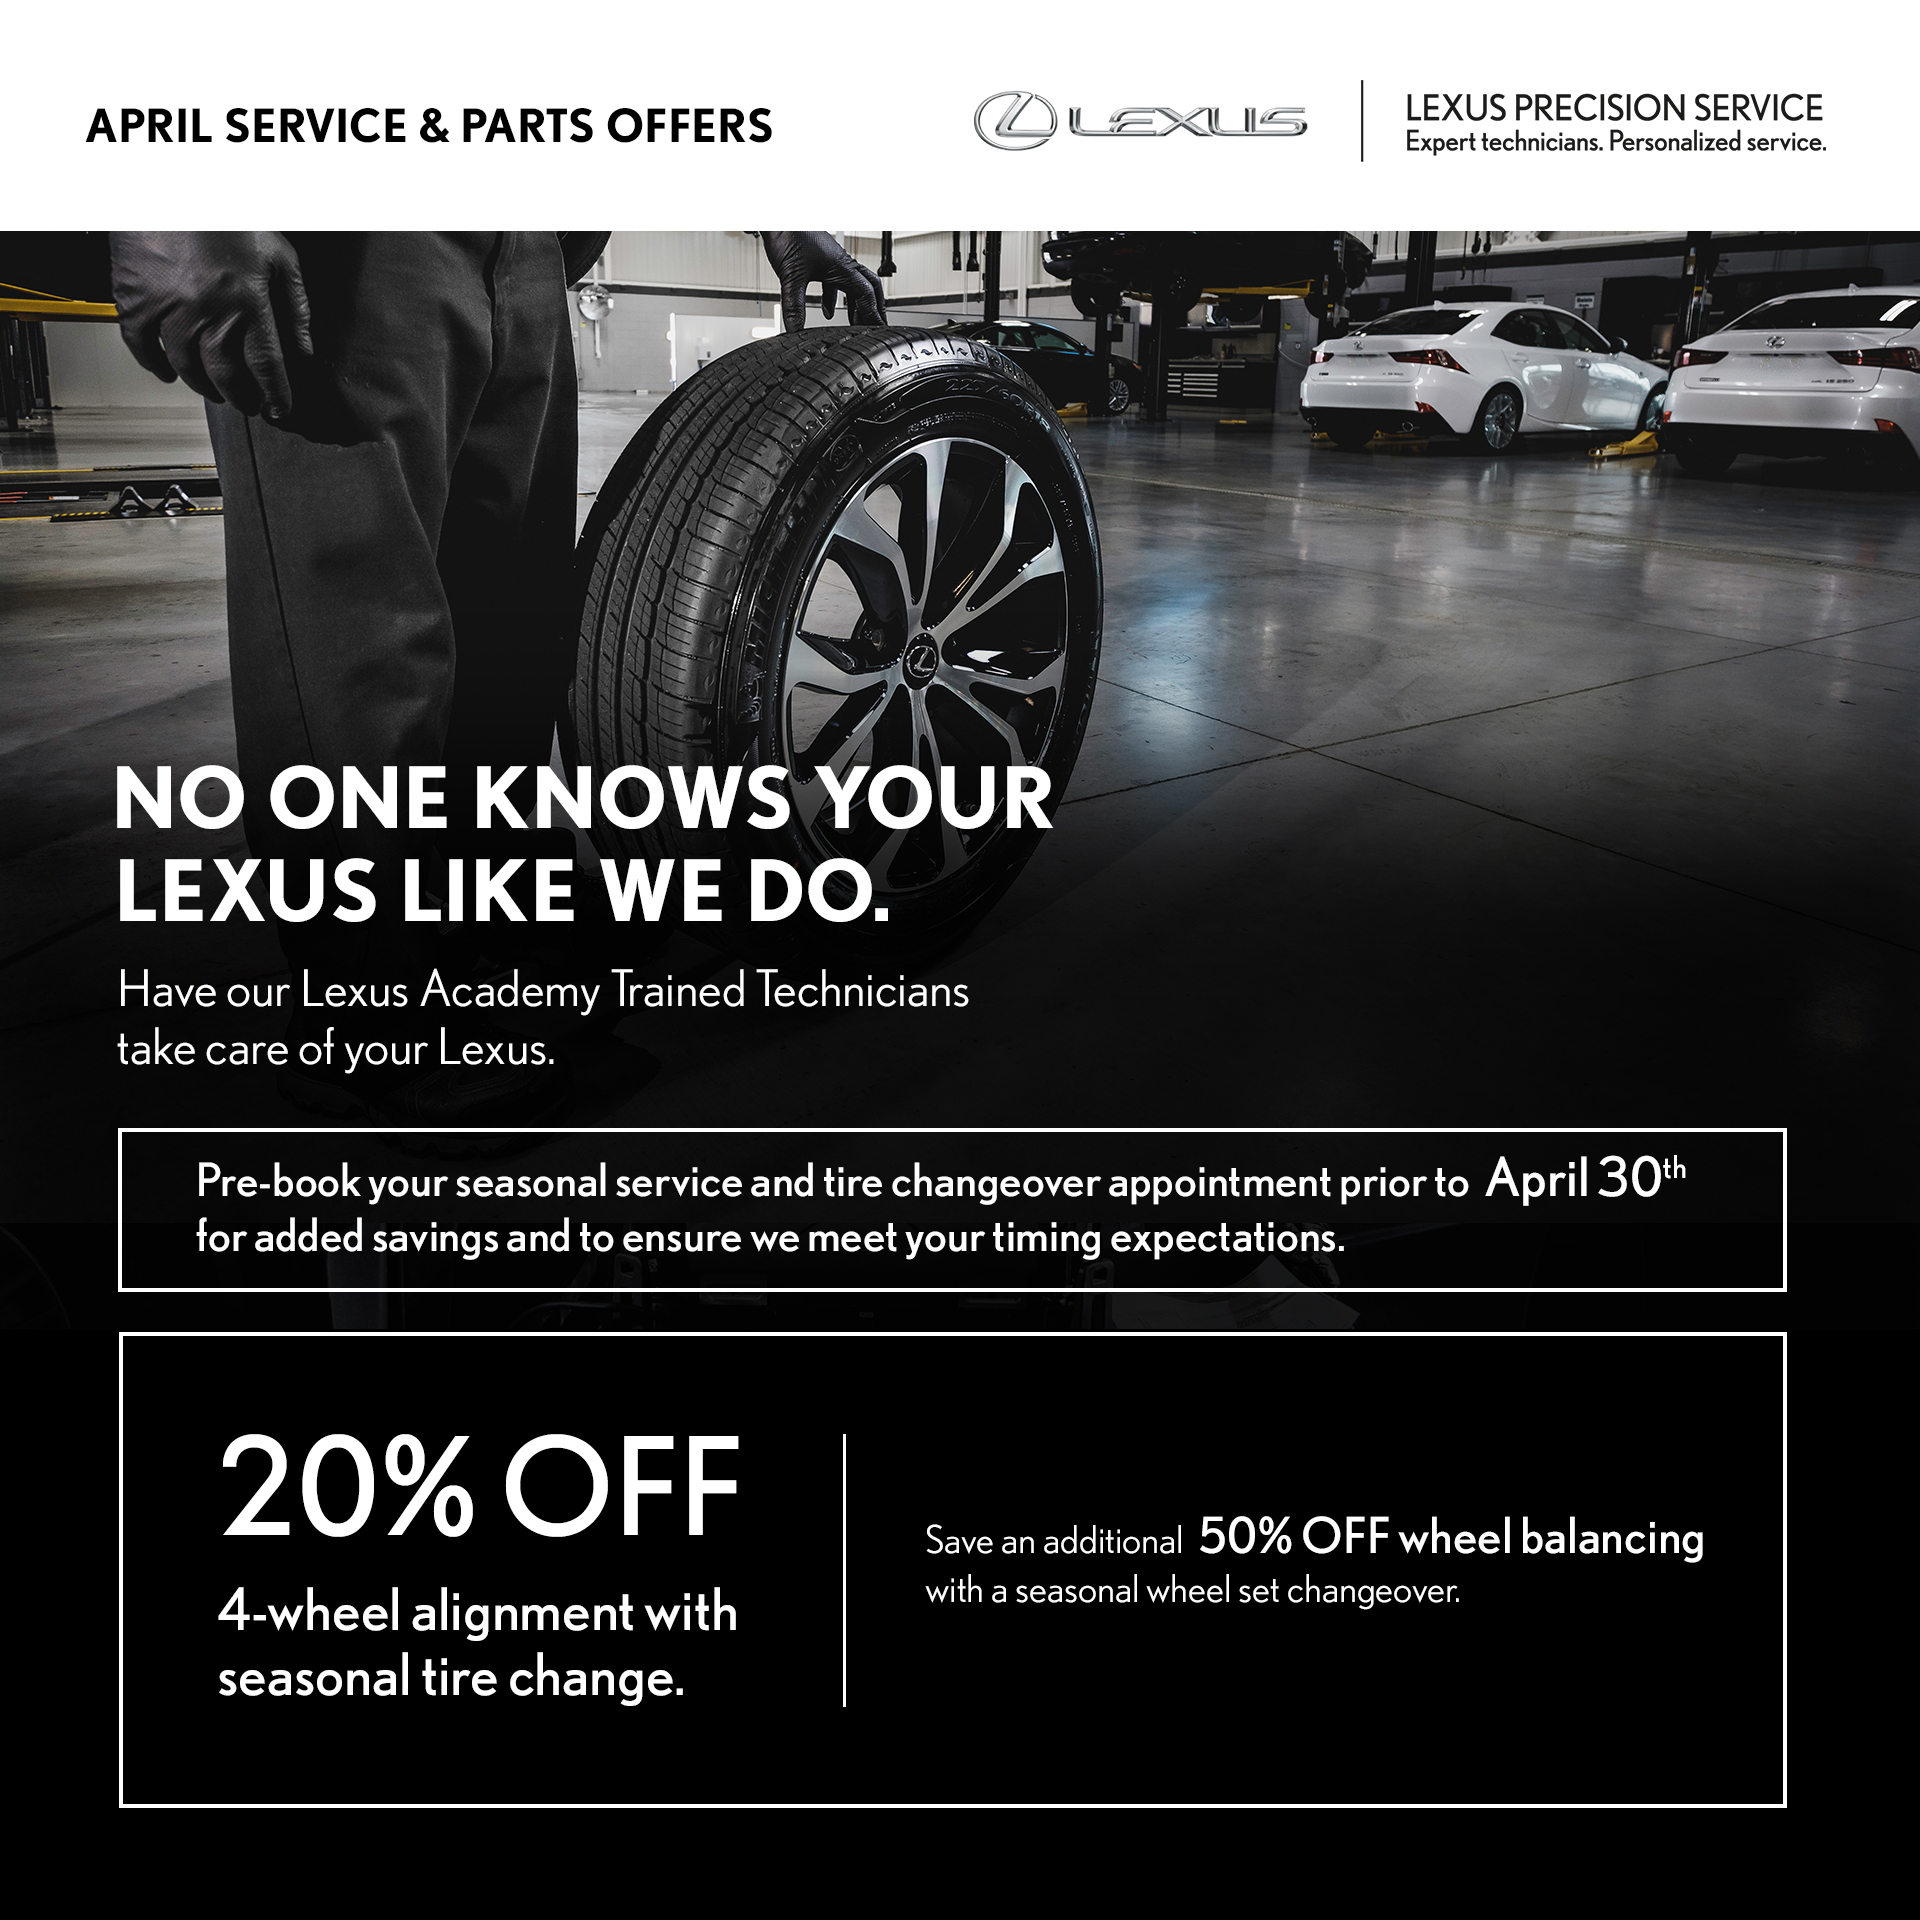 April Service Offer – Wheel Alignment